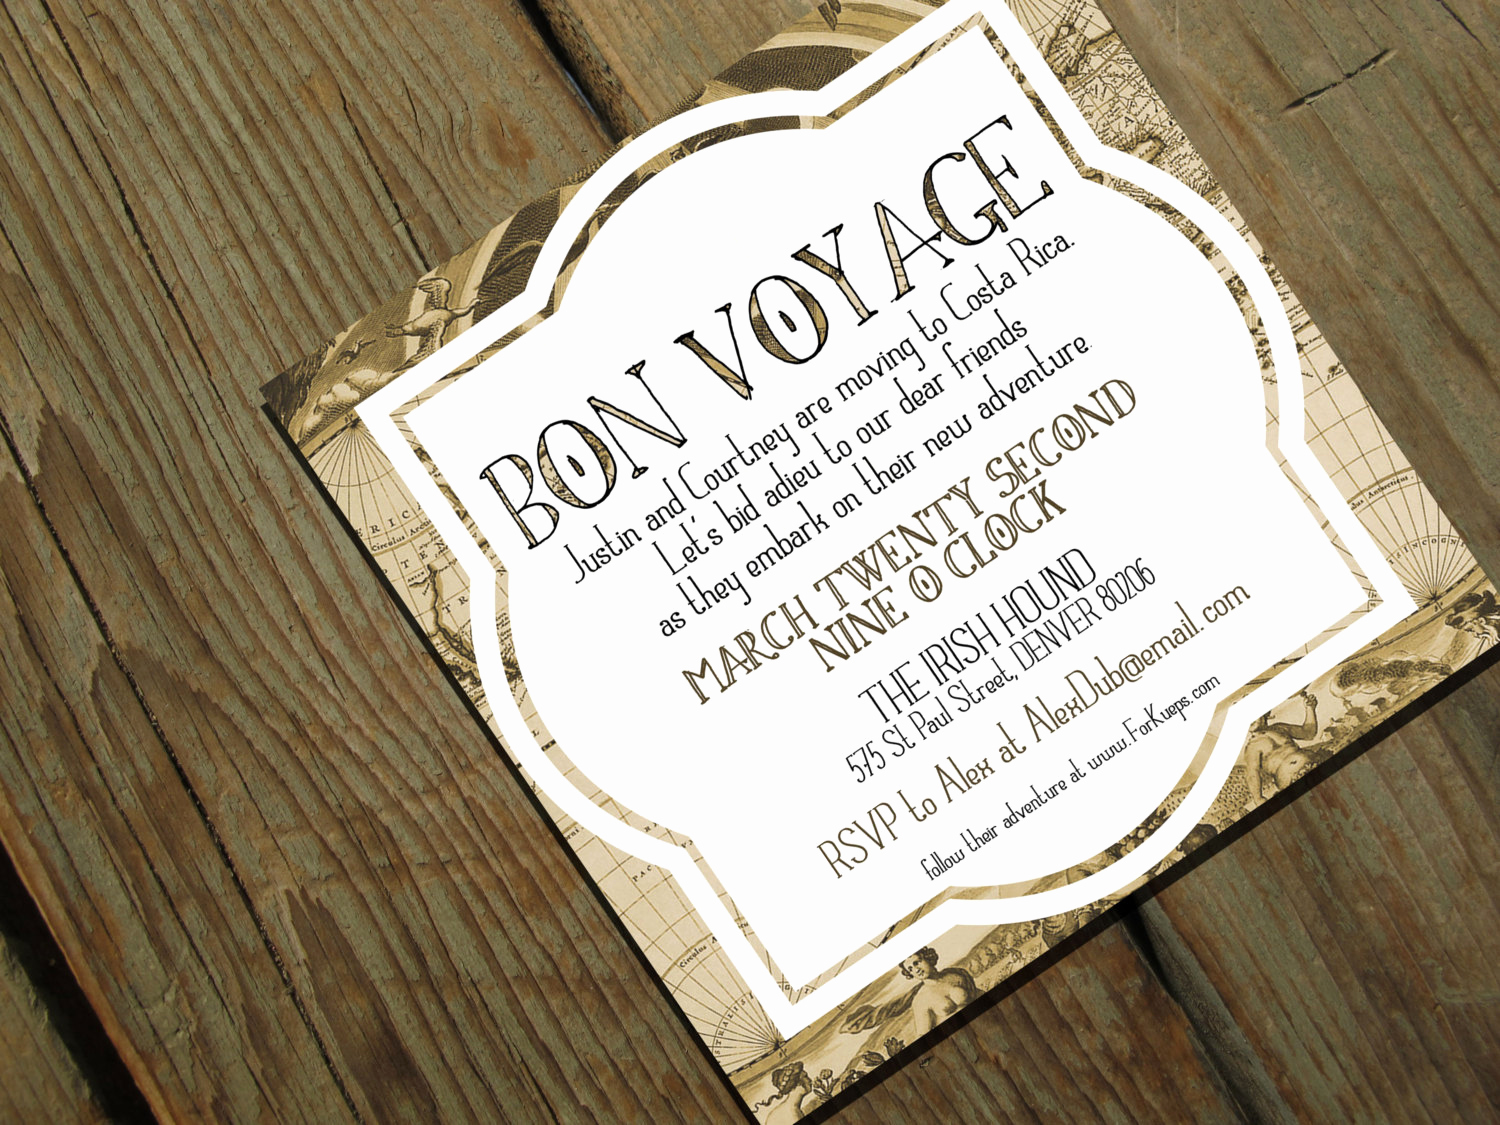 Going Away Party Invitation Wording Elegant Bon Voyage Going Away Party Invitation Moving by